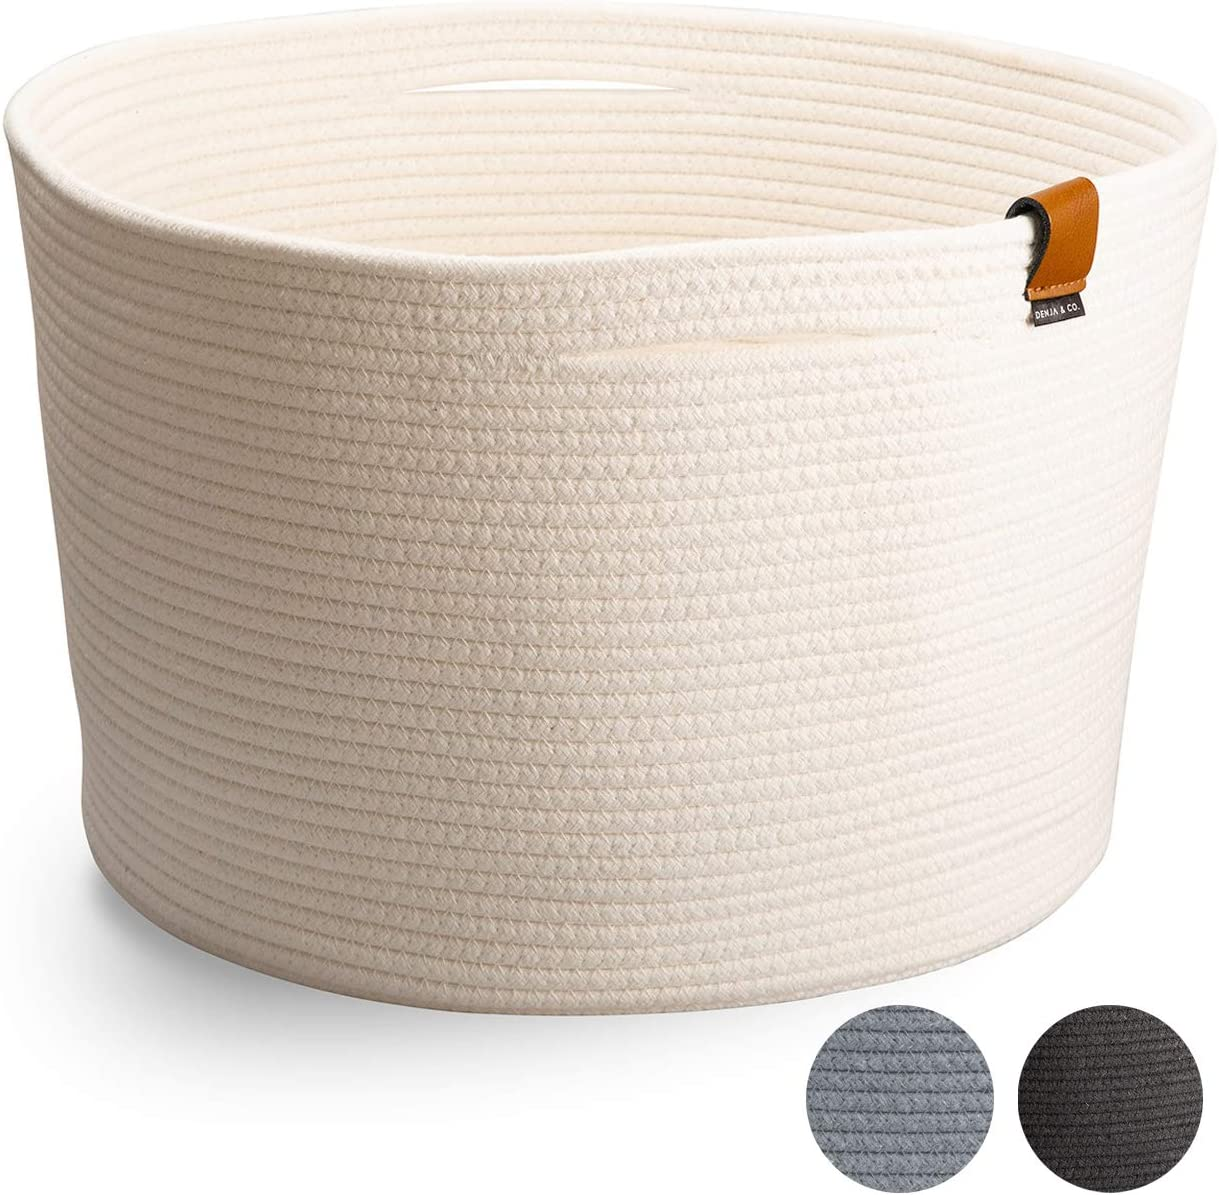 "DENJA & CO Extra Large Toy Storage Basket with Handles (21"" Wide x 13.8"" Tall) 